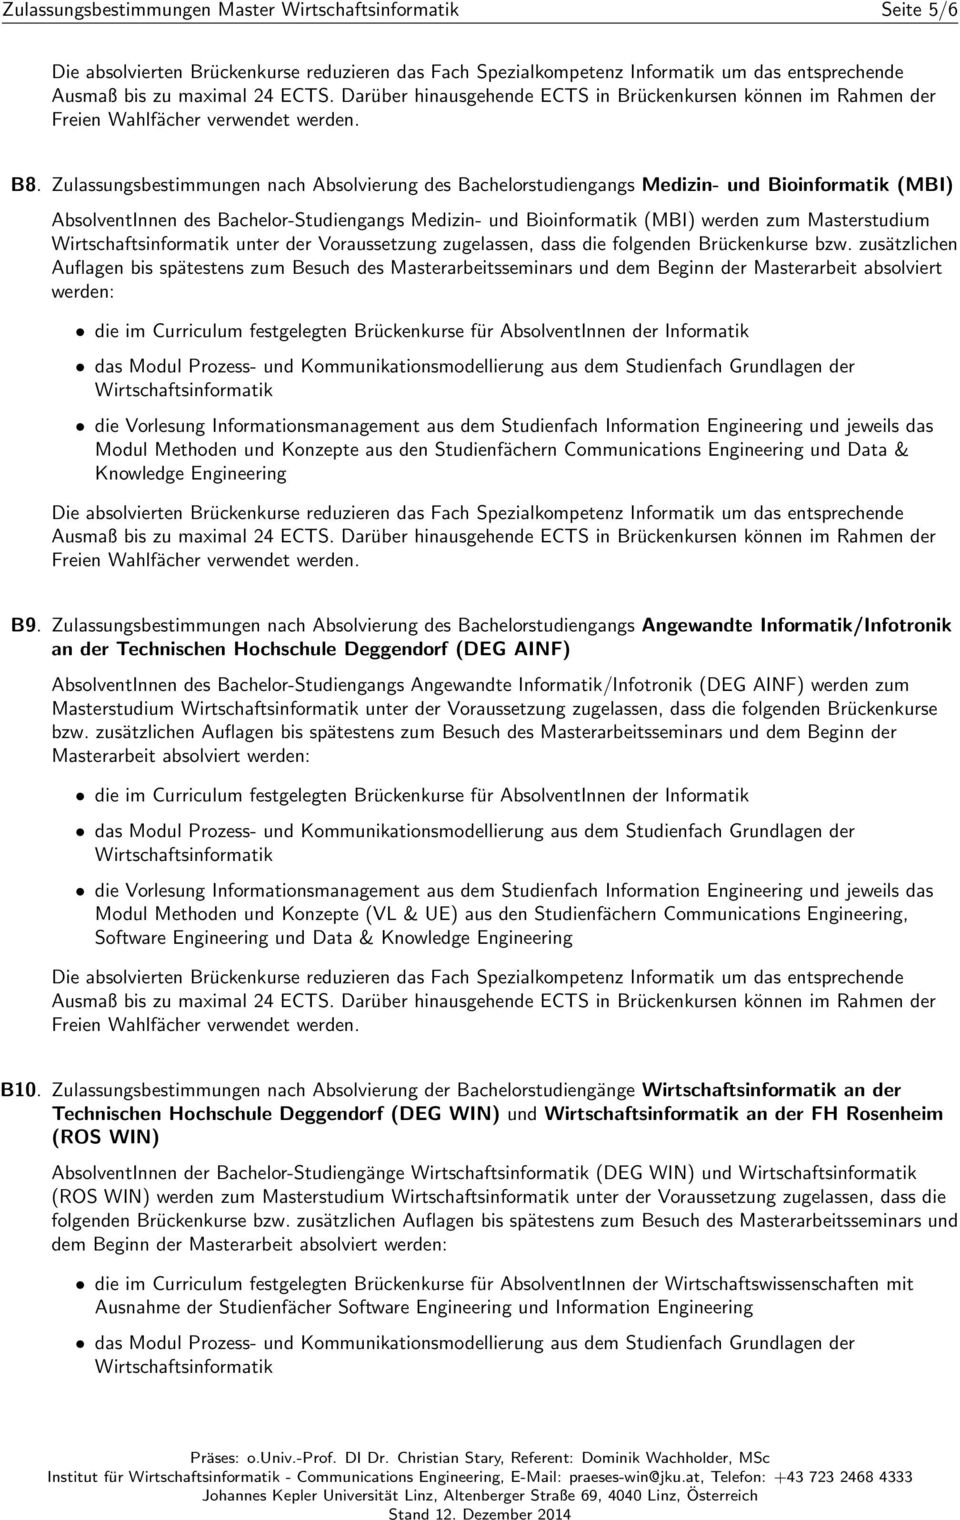 unter der Voraussetzung zugelassen, dass die folgenden Brückenkurse bzw. zusätzlichen Modul Methoden und Konzepte aus den Studienfächern Communications Engineering und Data & Knowledge Engineering B9.